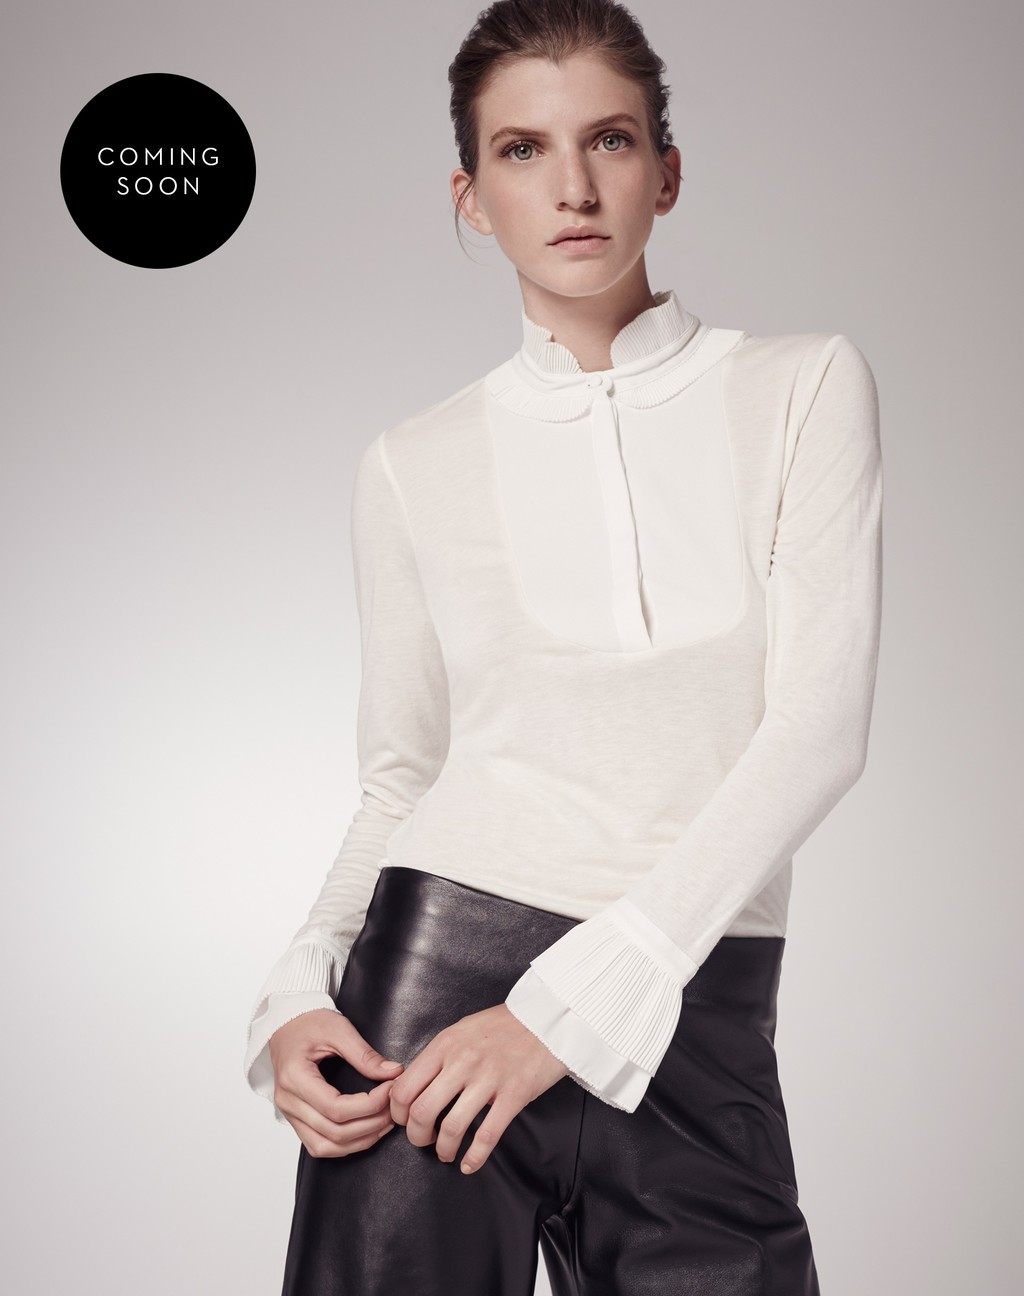 Pleated Collar Layering Shirt - pattern: plain; style: blouse; sleeve style: trumpet; predominant colour: white; occasions: evening; length: standard; neckline: collarstand; fibres: polyester/polyamide - mix; fit: body skimming; sleeve length: long sleeve; pattern type: fabric; texture group: other - light to midweight; season: s/s 2016; wardrobe: event